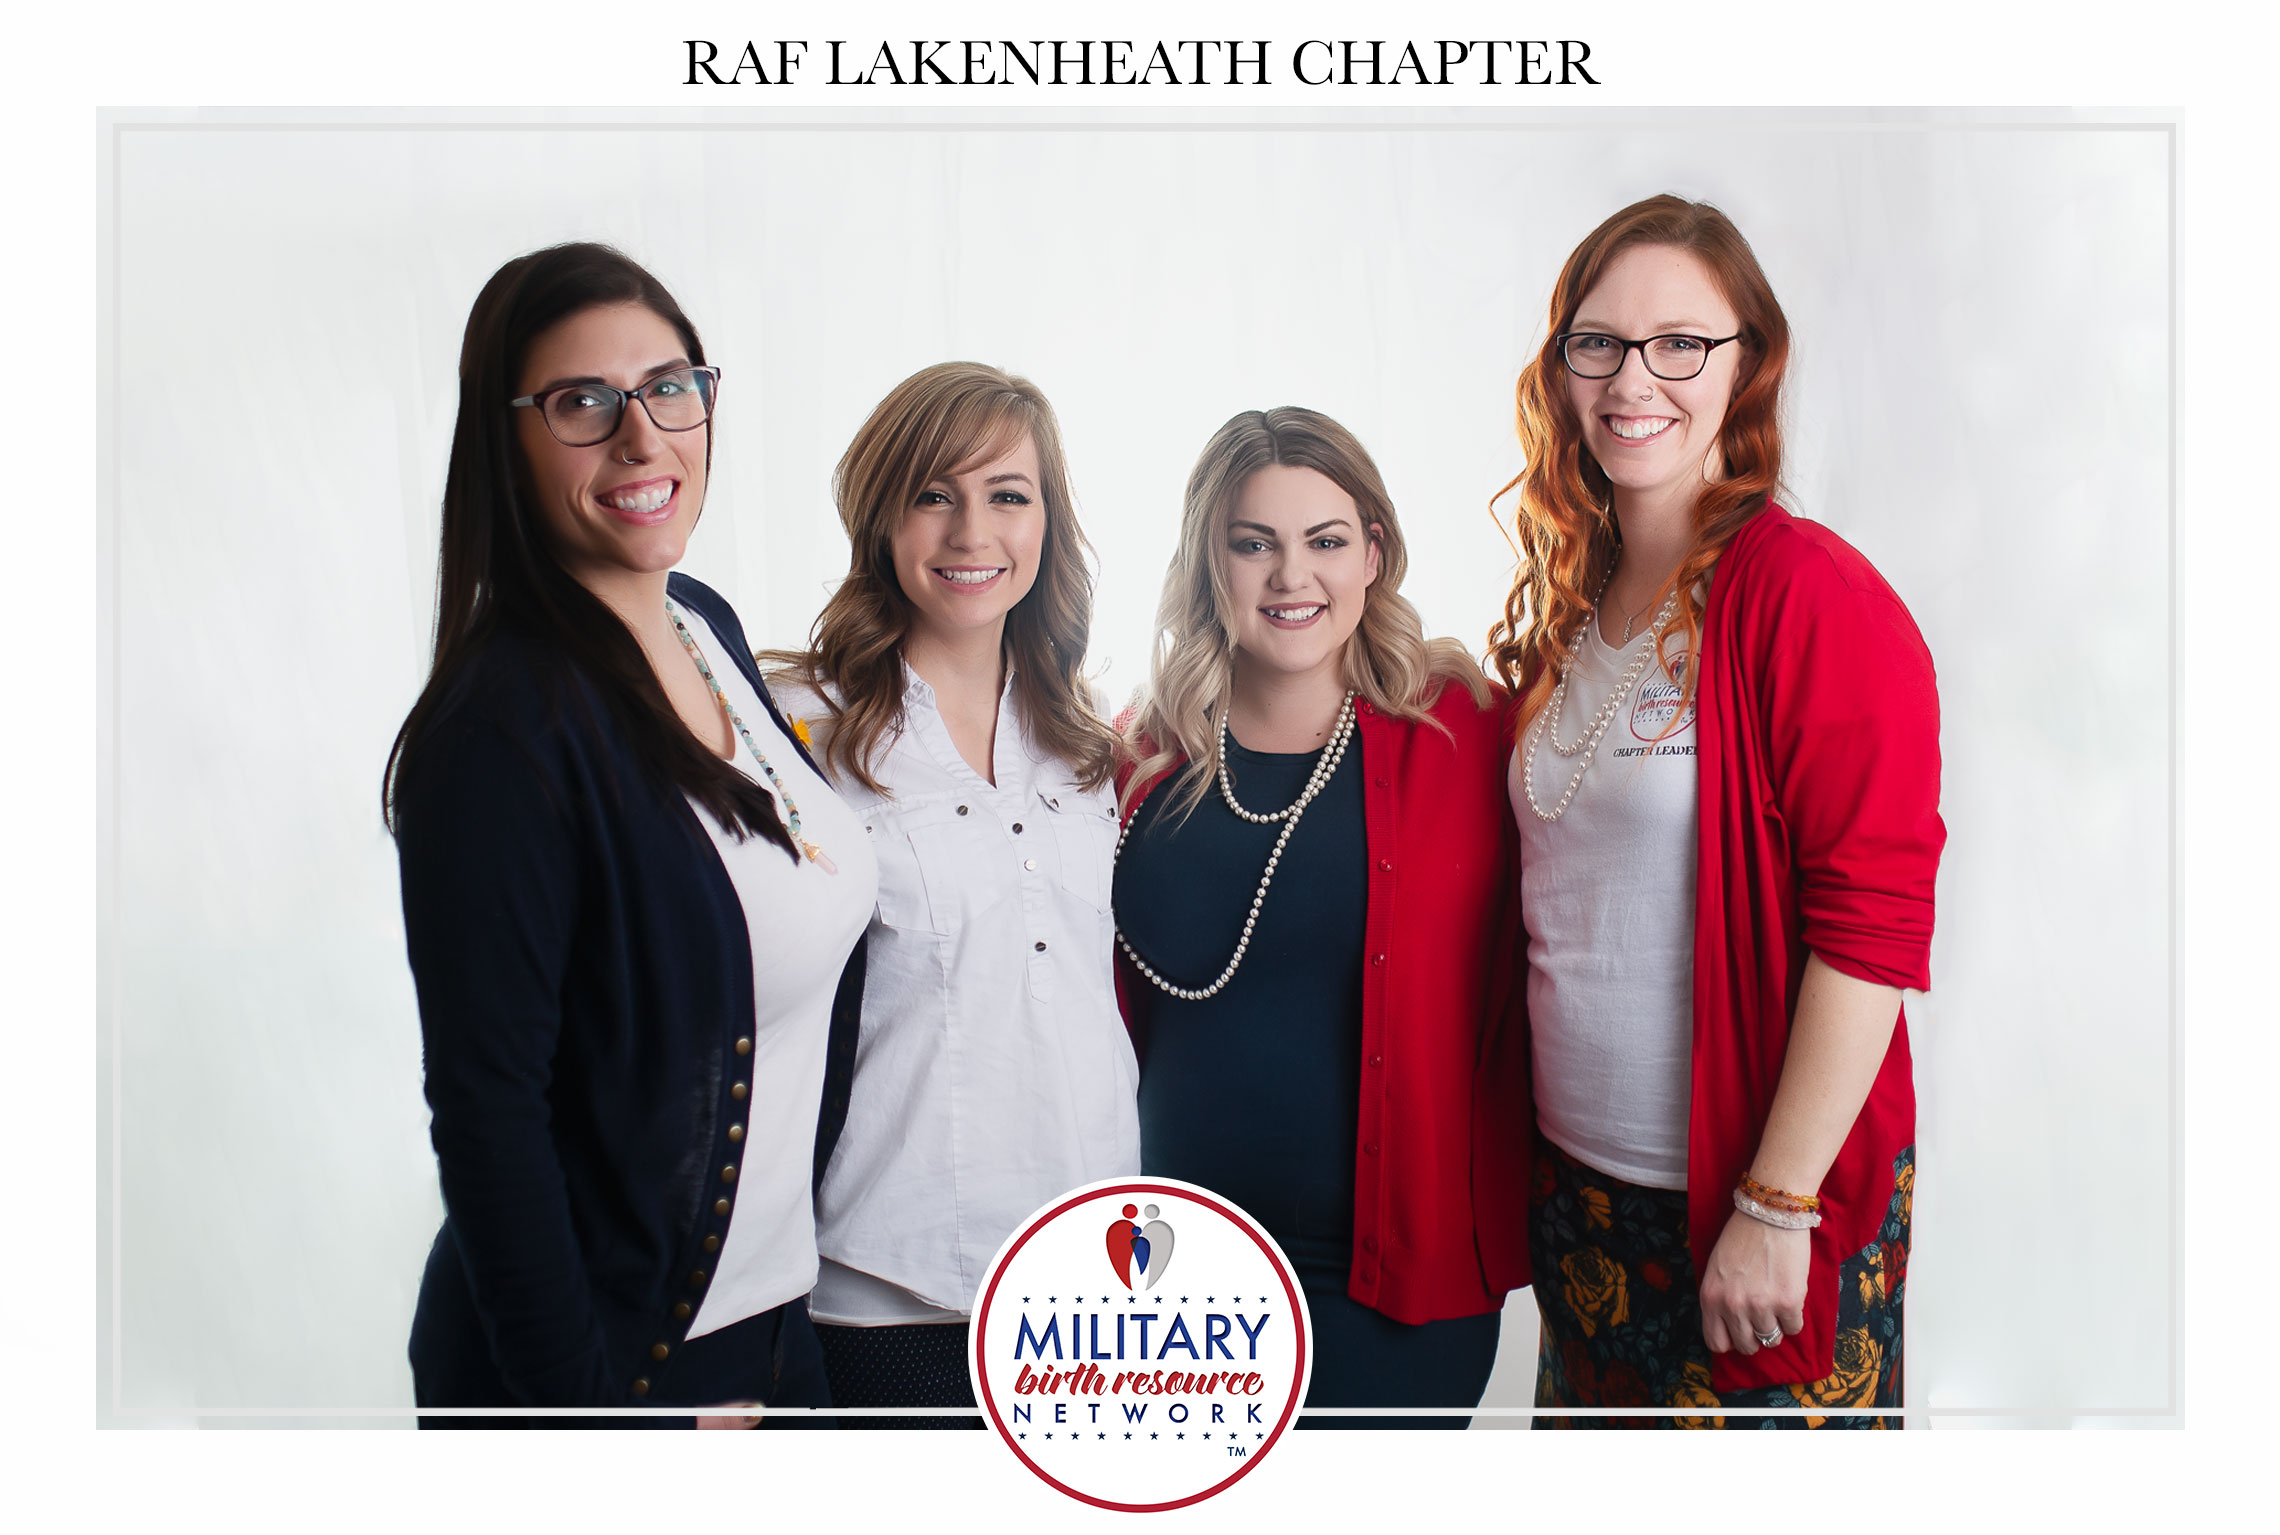 Pictured left to right: Amy R., Mariah D., Sarah P., Katie B. - Chapter Board  Photo Credit:  Hello, Lovely Birth Stories + Belly to Baby Photography  &  So Smith Photography